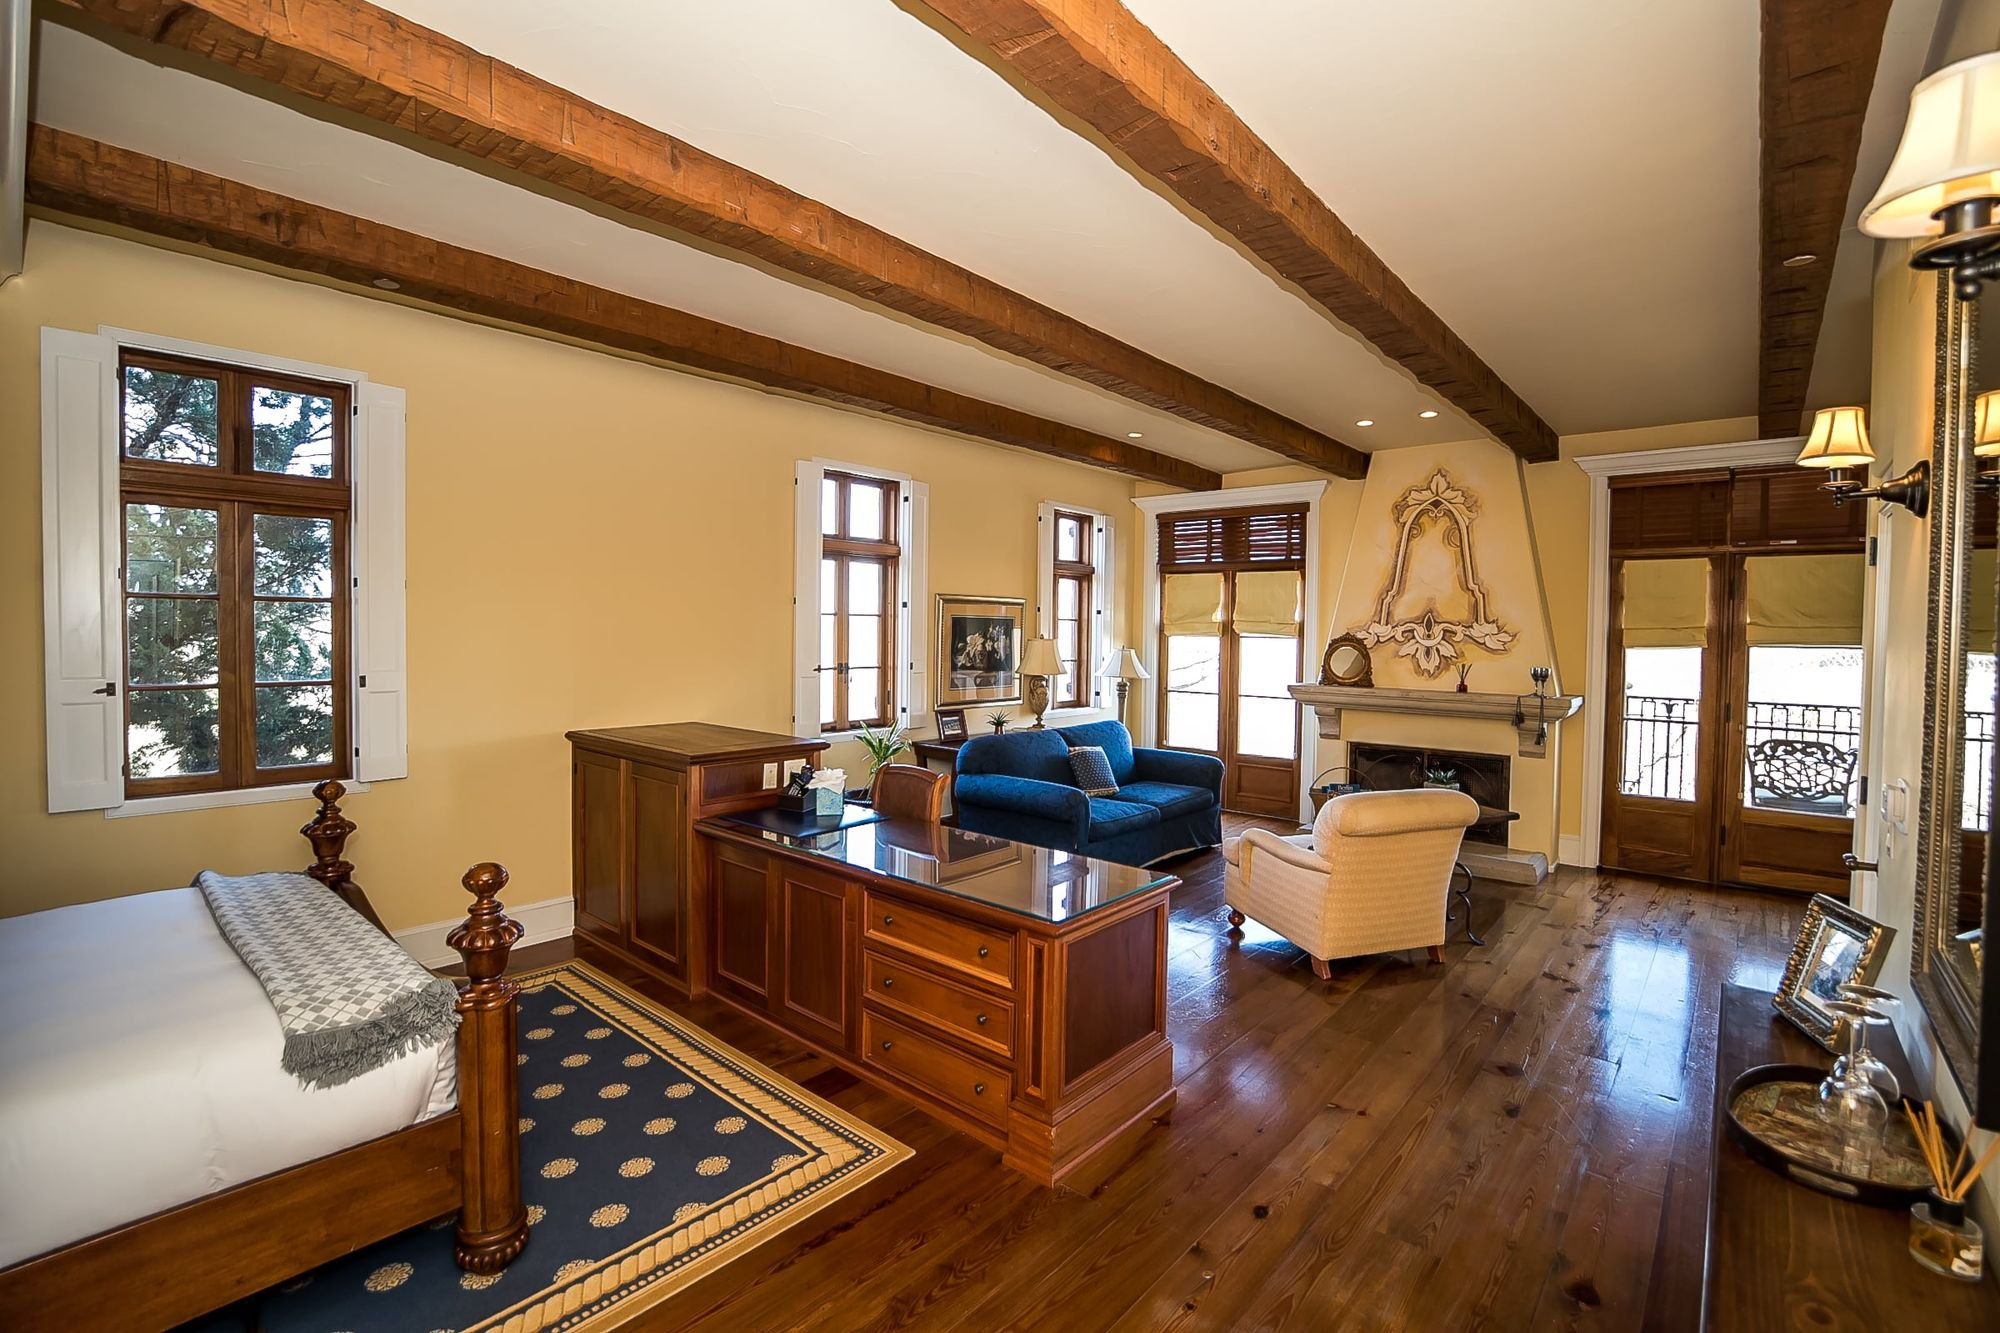 Room with rafters on the ceiling and a decorative fireplace with blue couch and chair in front